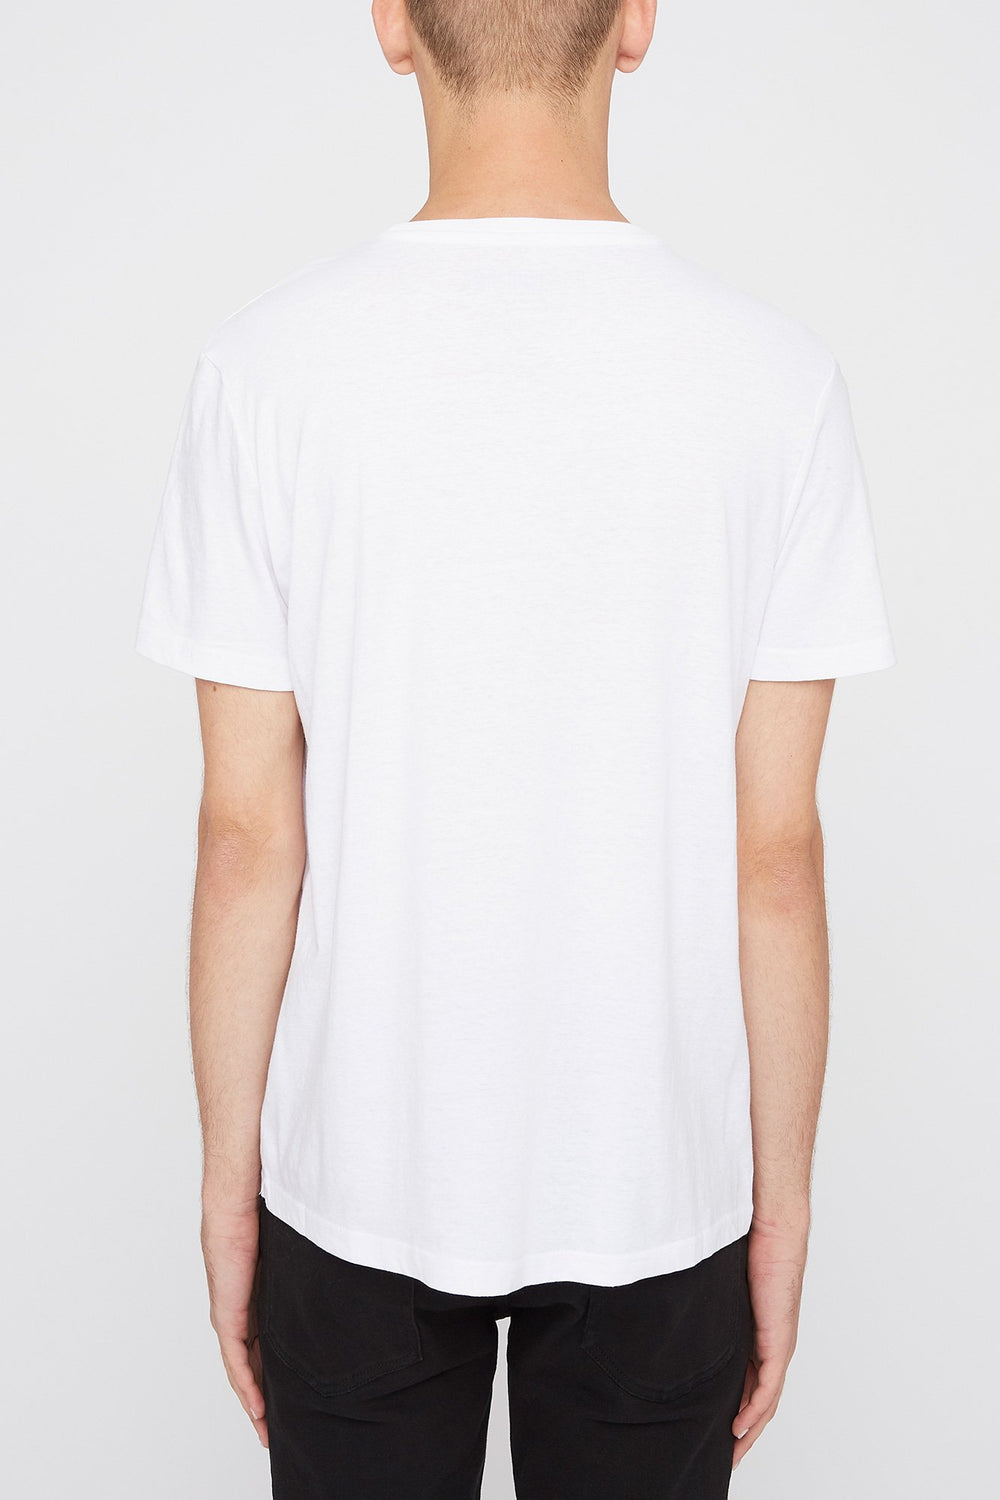 T-Shirt Snoopy Homme Blanc